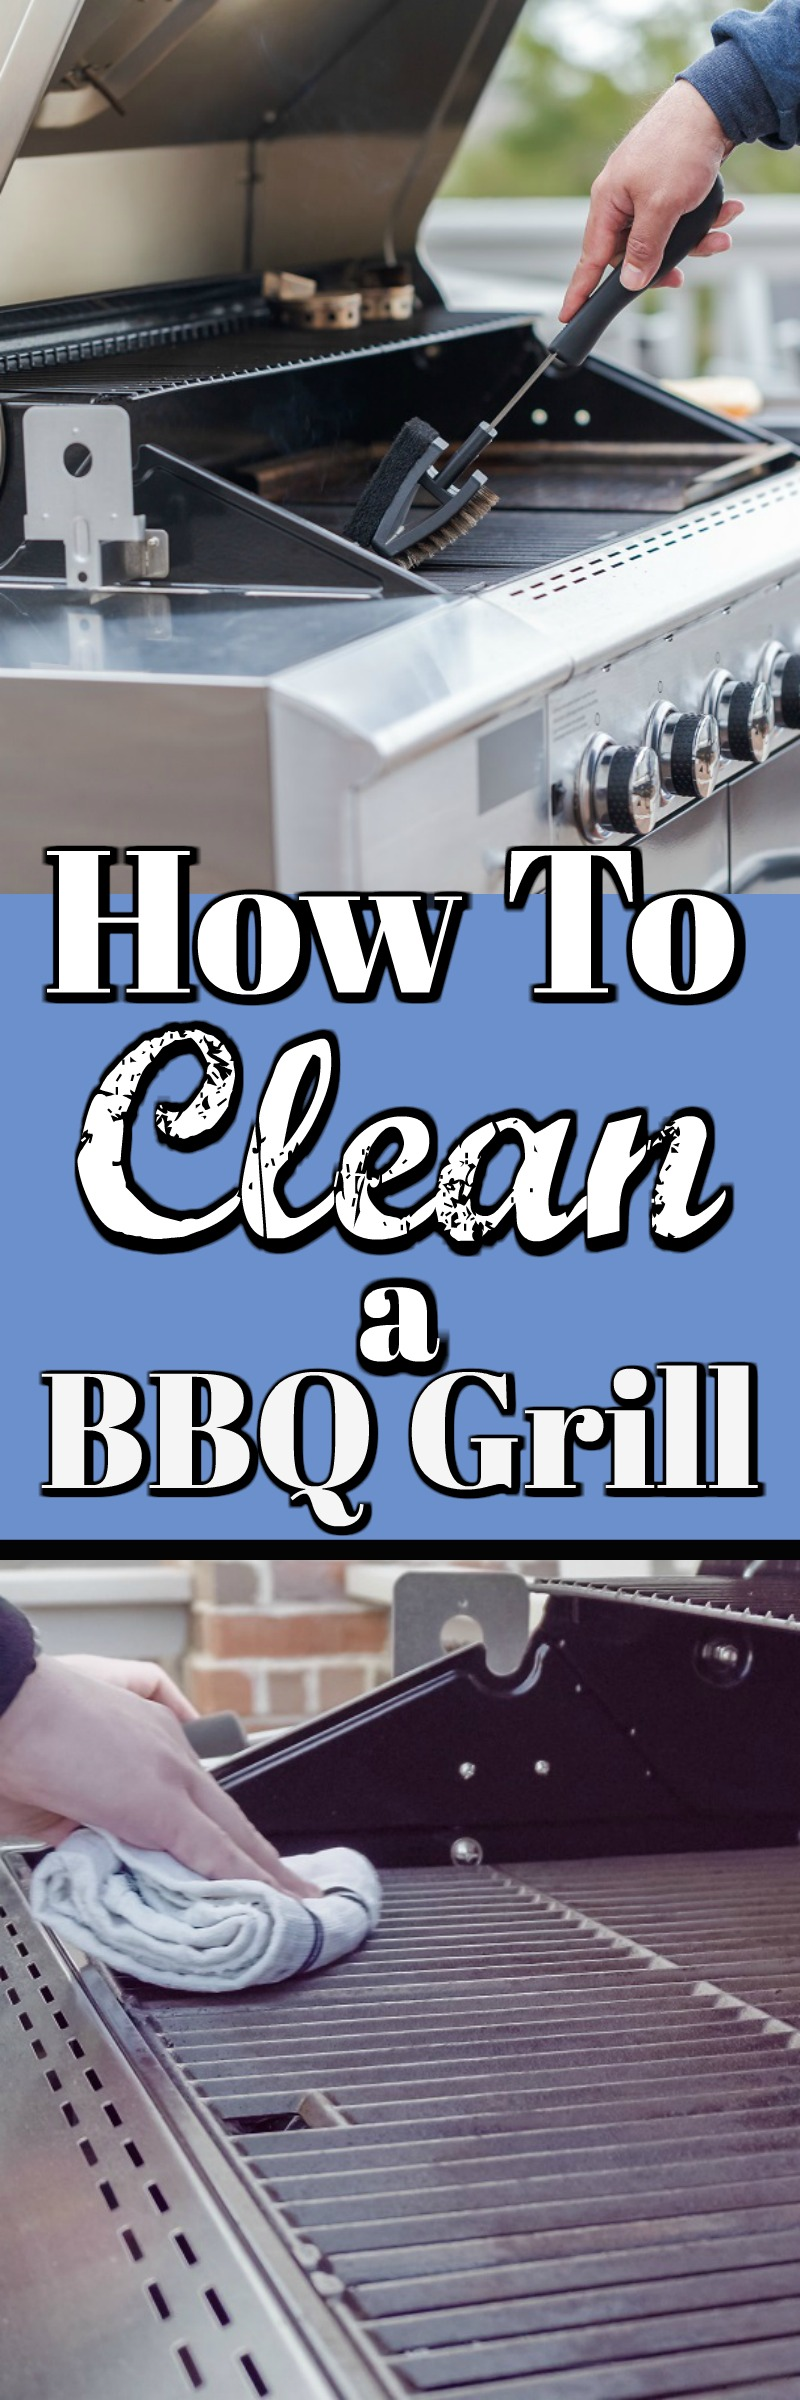 How to a Clean BBQ Grill - Spring Cleaning, something that might be forgotten in your Spring clean but shouldn't be! #Grill Cleaning #Spring Cleaning #BBQ Grill Cleaning